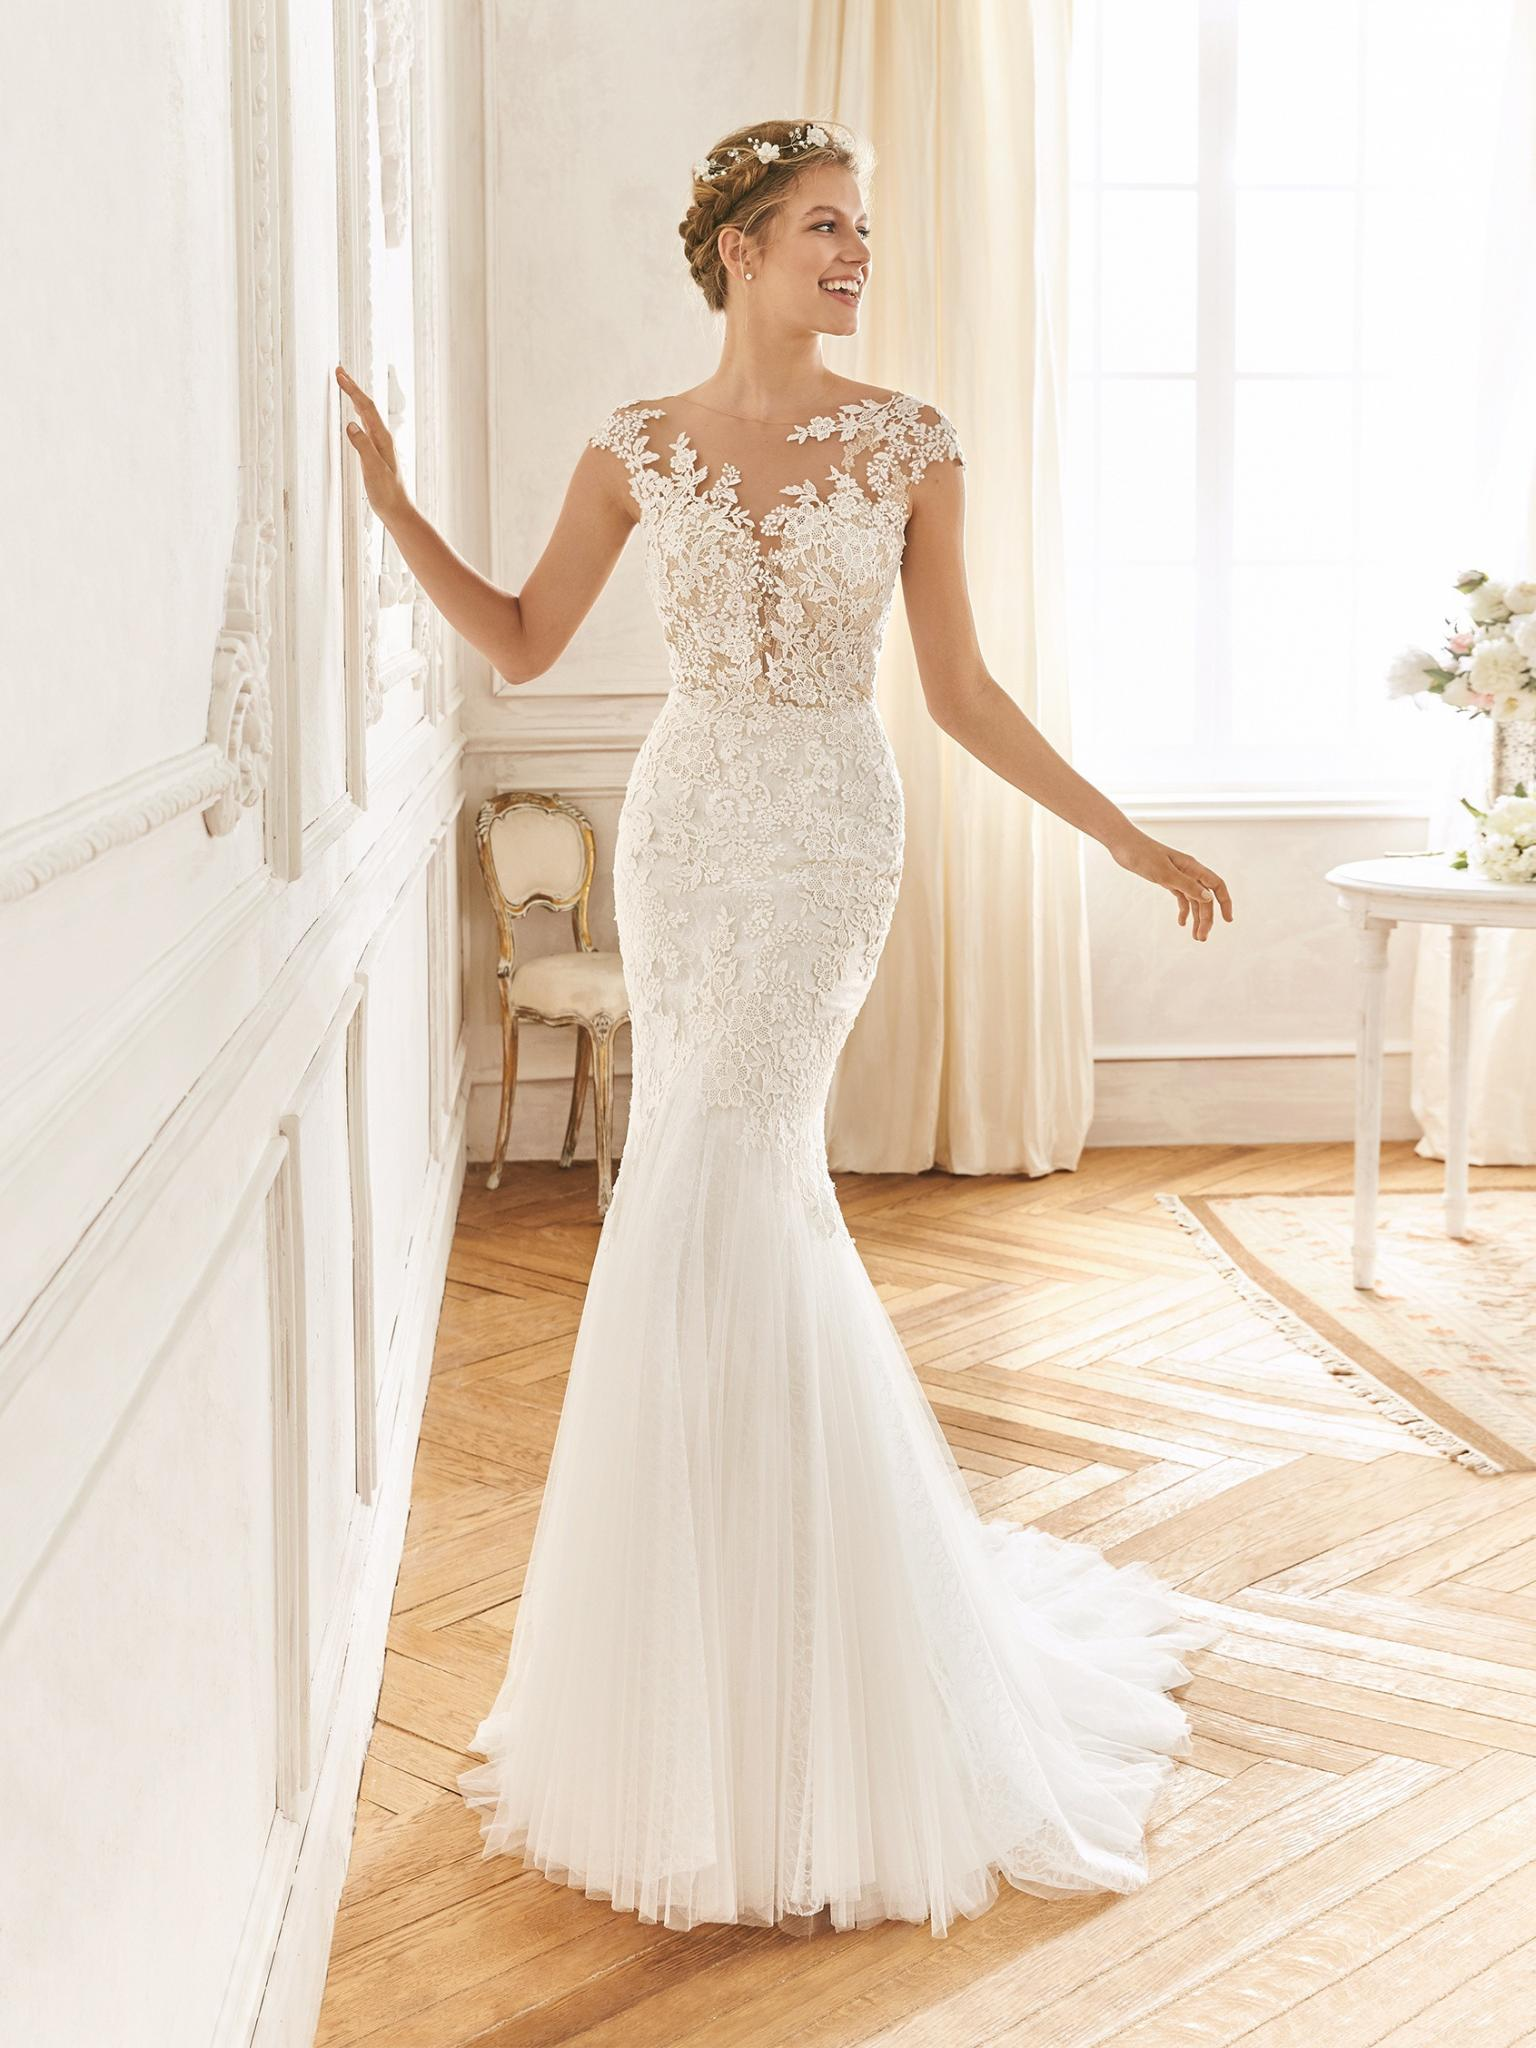 La Sposa BASTIAN B - Vestidos de Noiva 2019 - Bridal Collection 2019